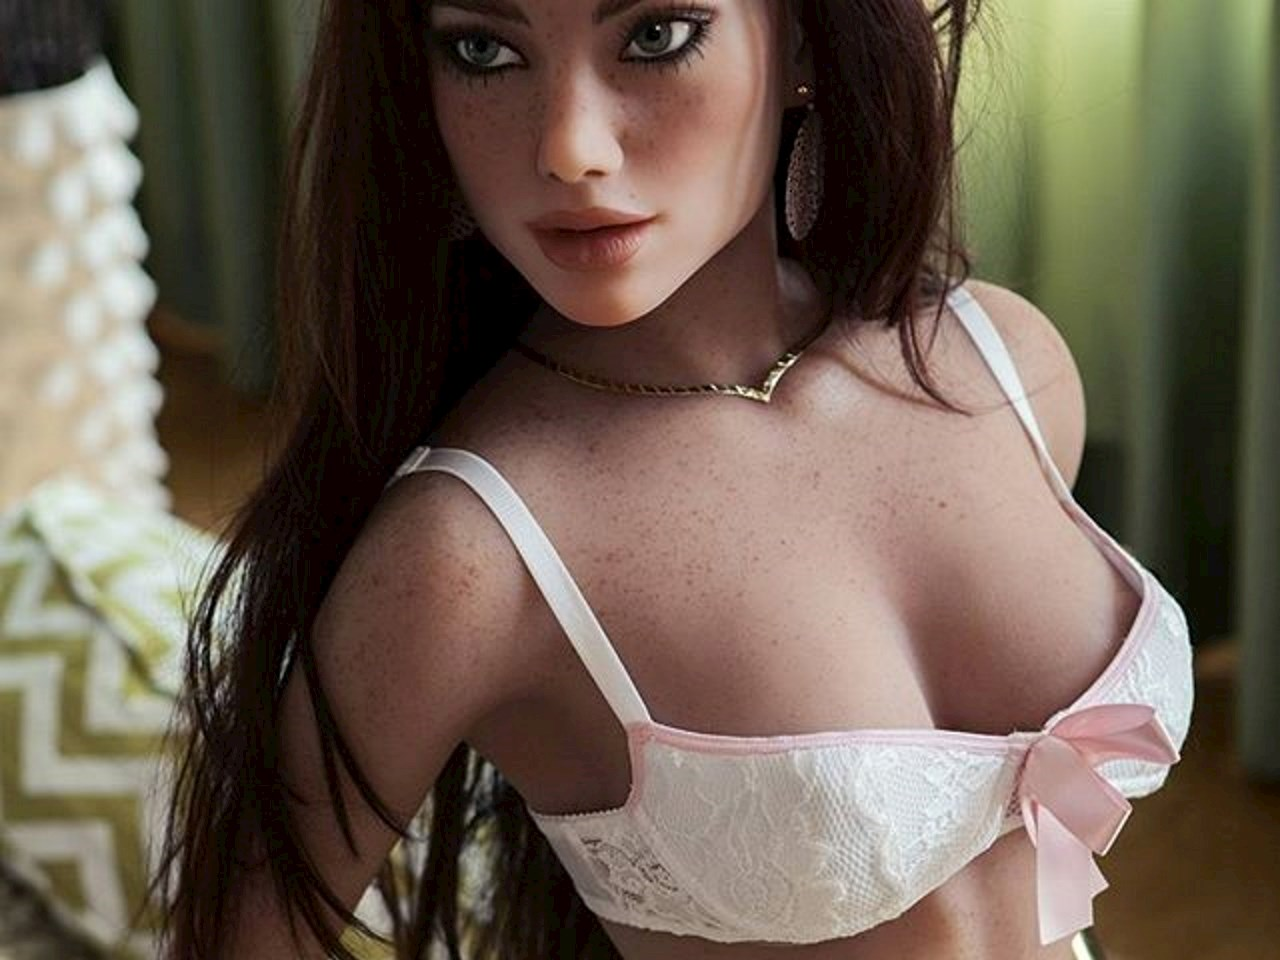 RealDoll Home of the worlds finest love dolls